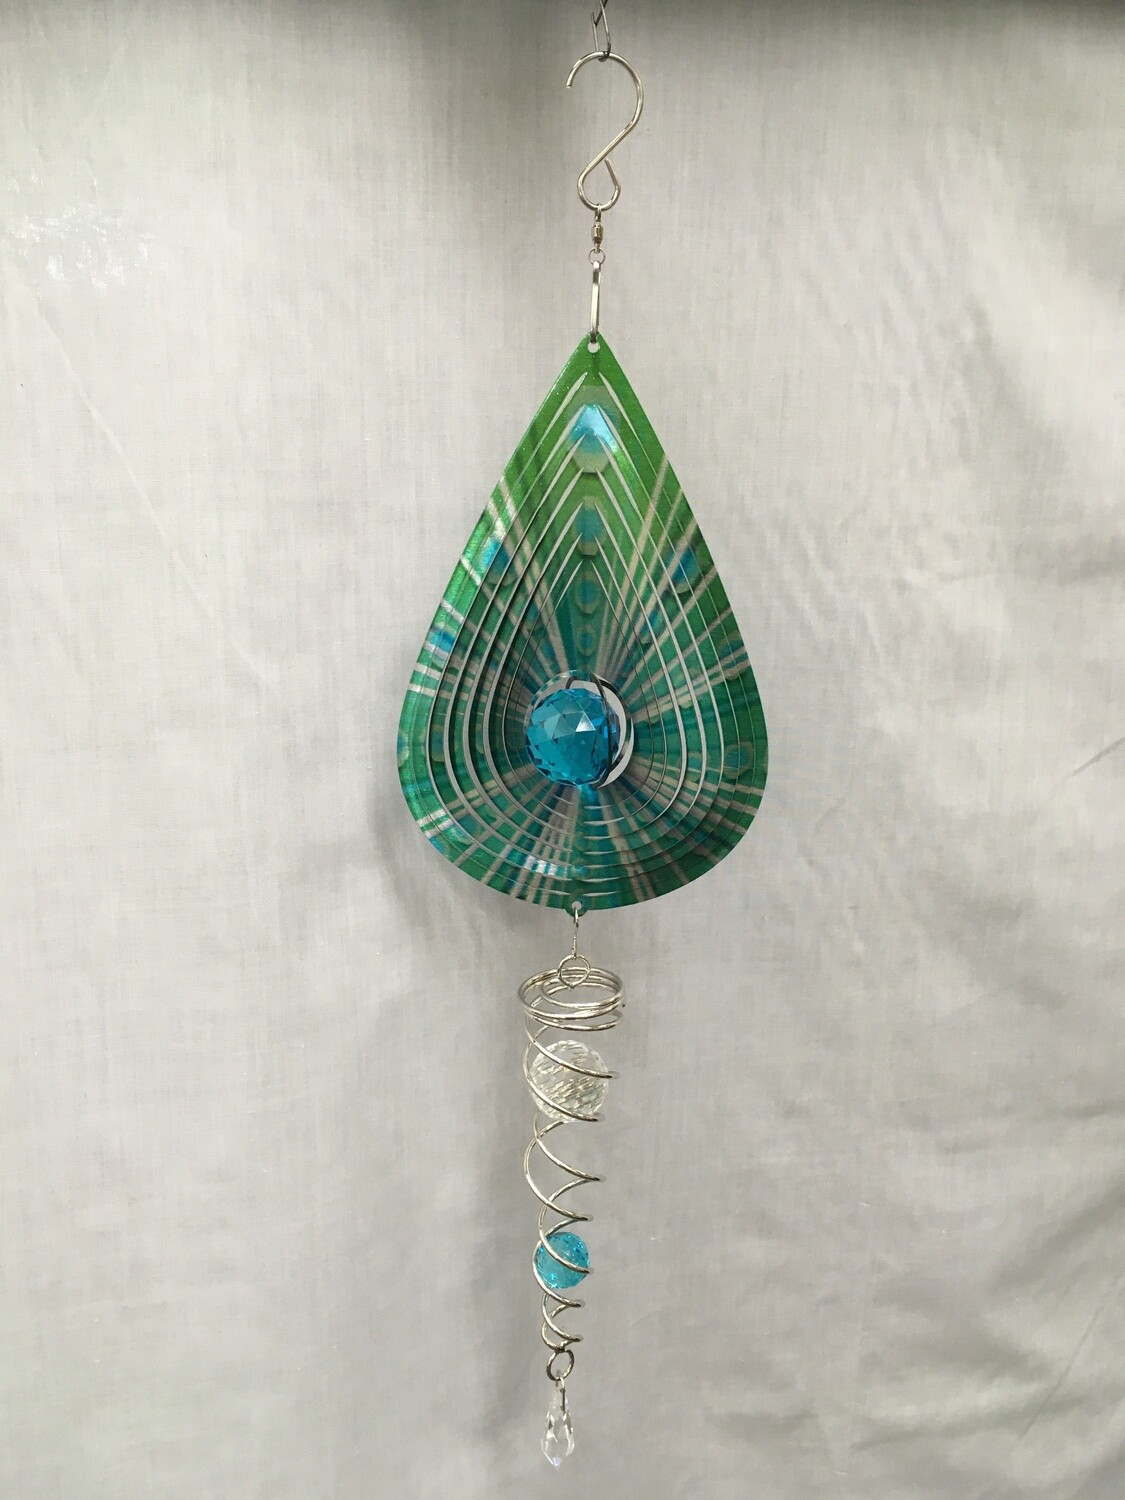 Spinner Set - Green Tear Drop Small Wind Spinner with Twister Spiral double crystal Tail